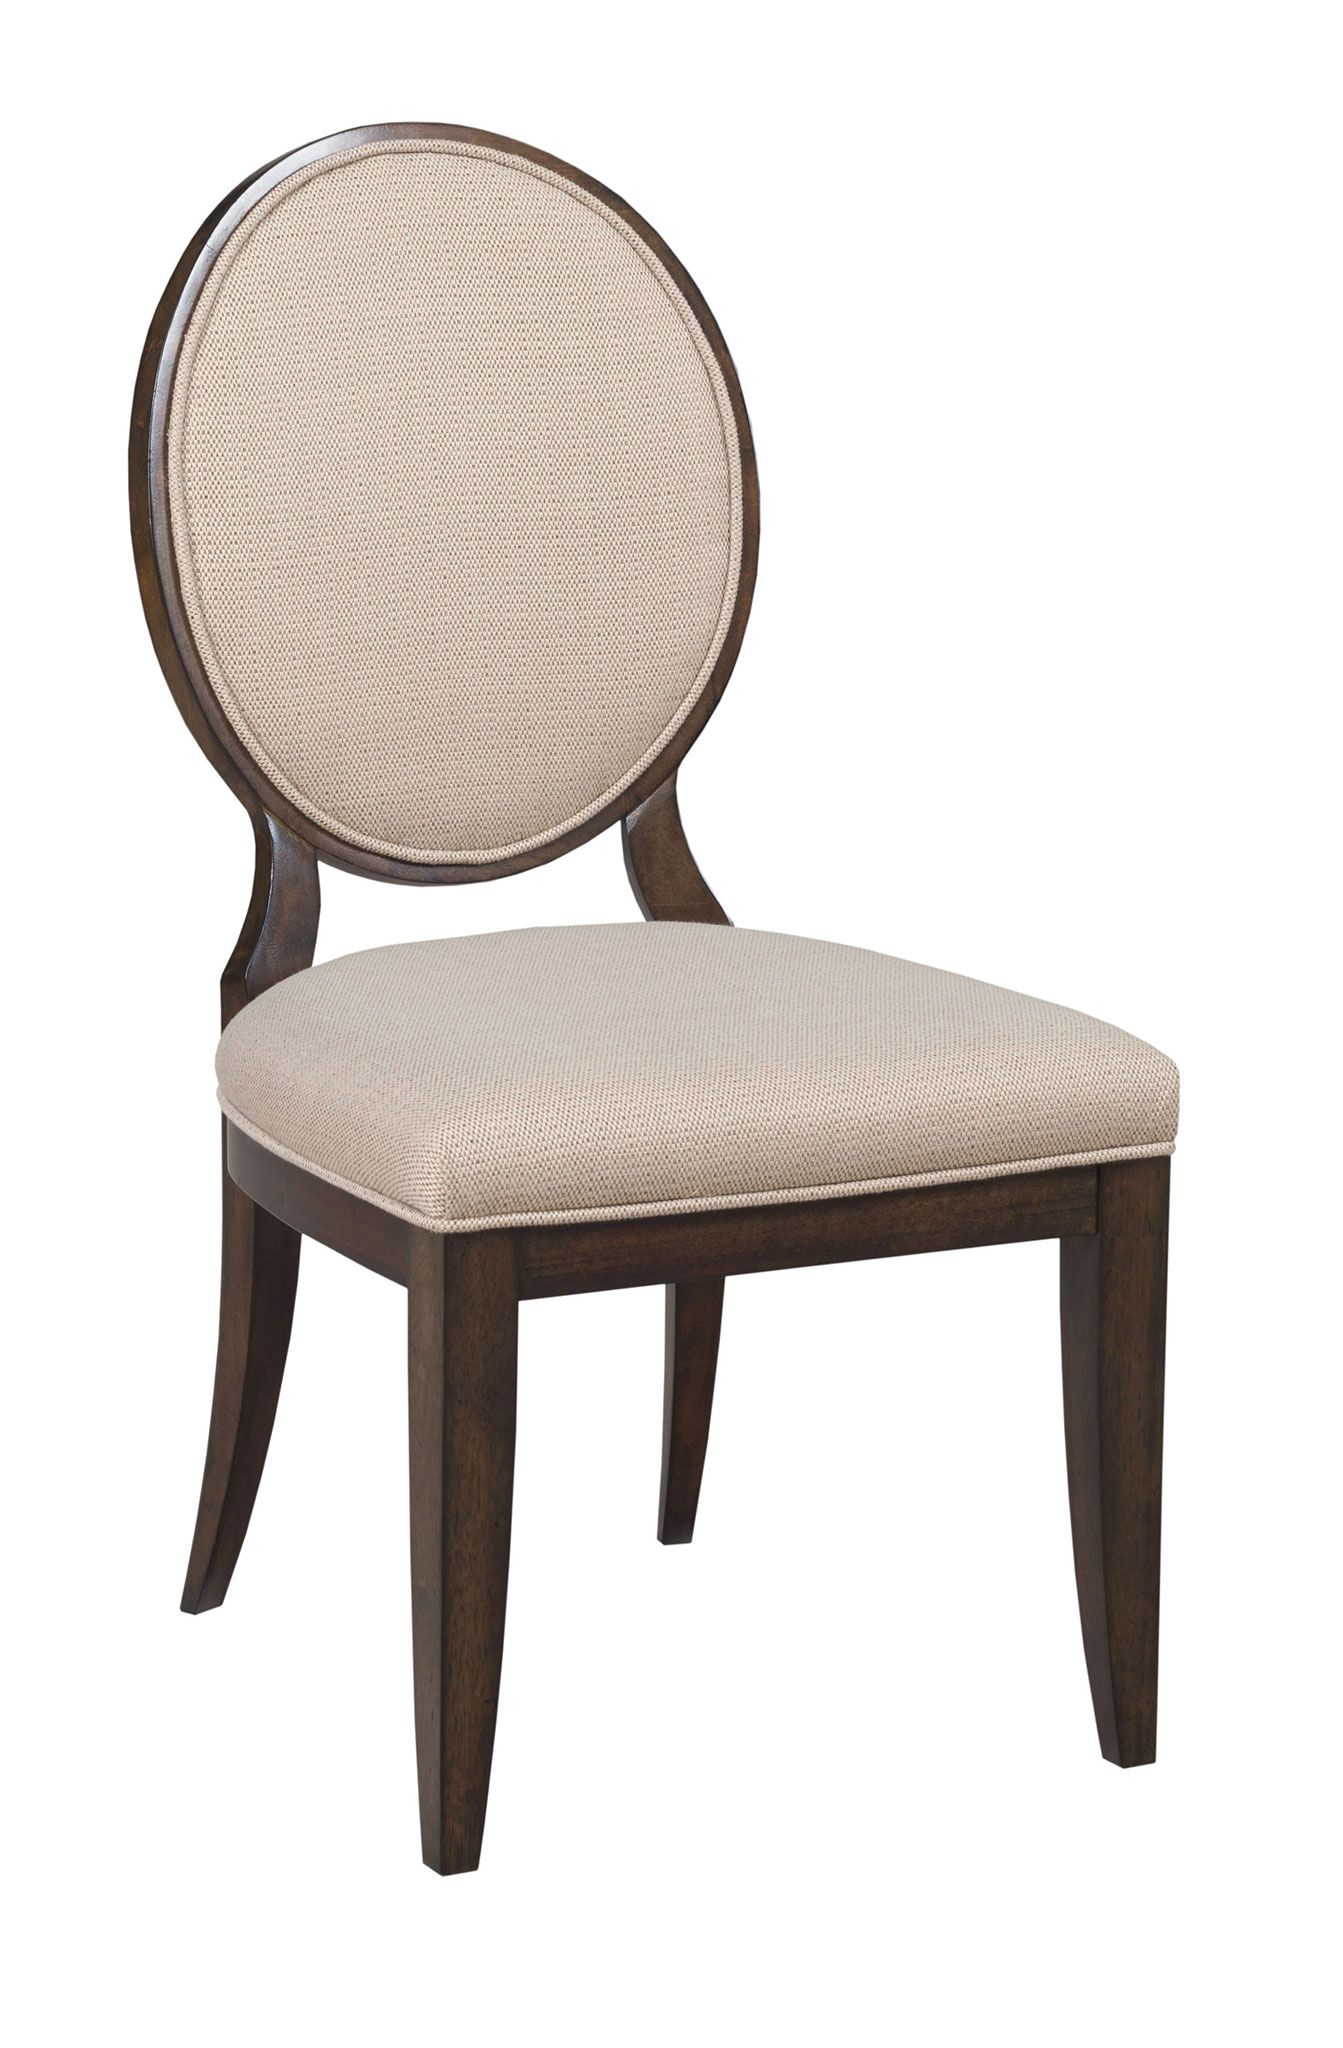 American Drew Grantham Hall Upholstered Side Chair - Item Number: 512-636